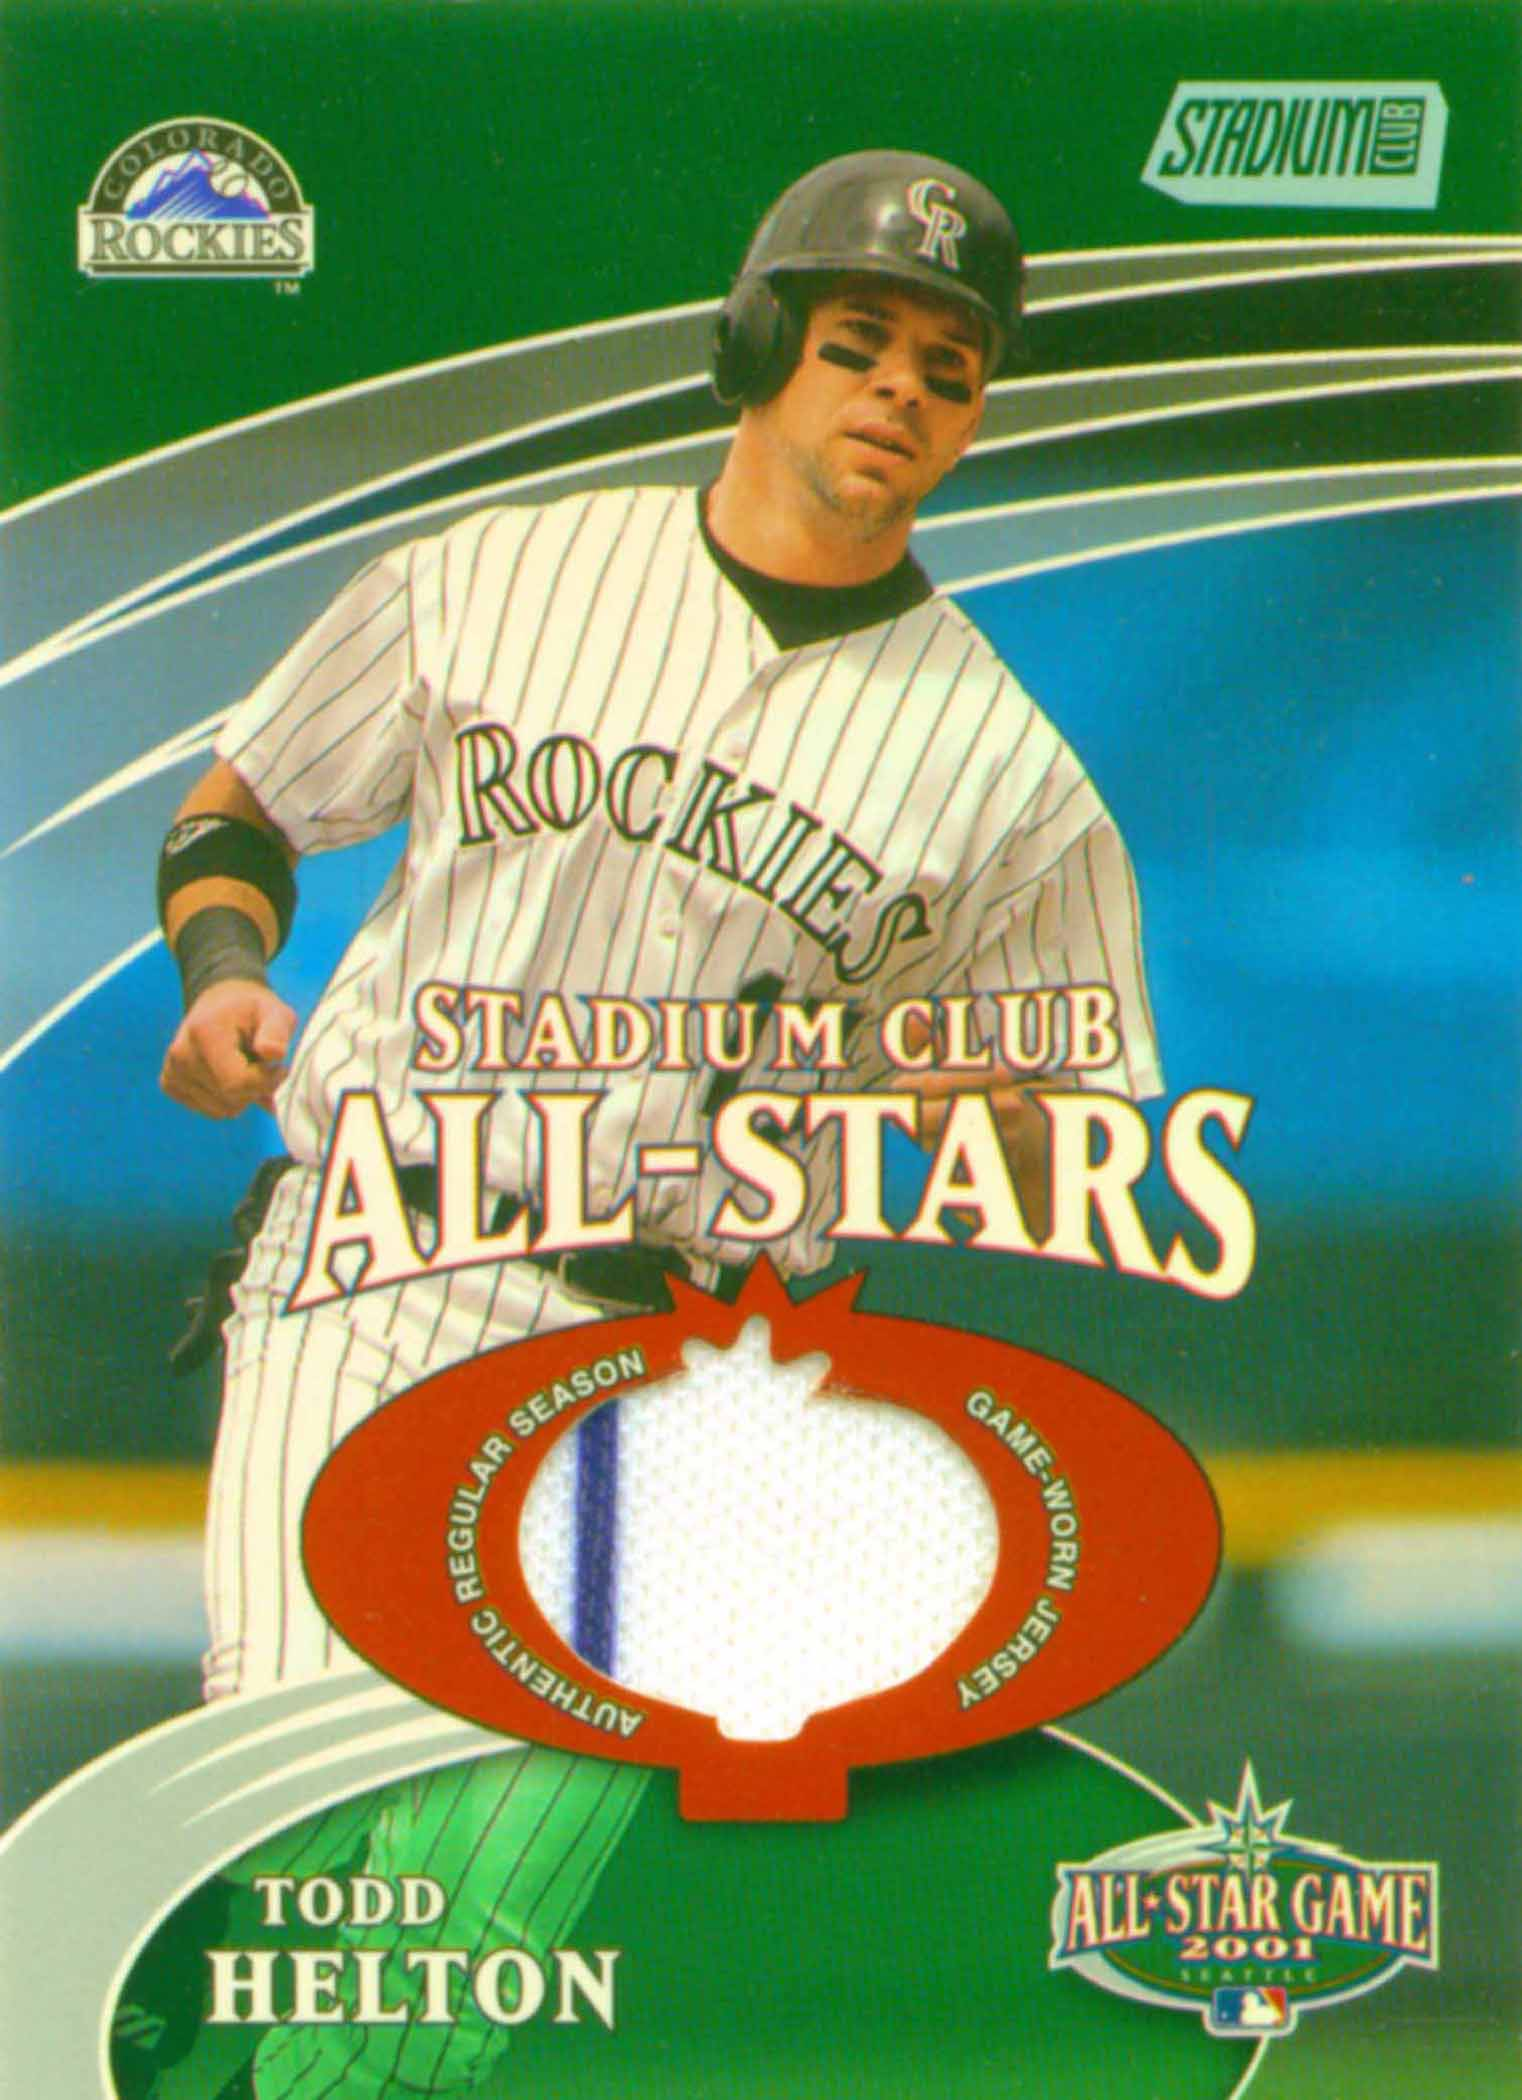 2002 Stadium Club All-Star Relics Jersey